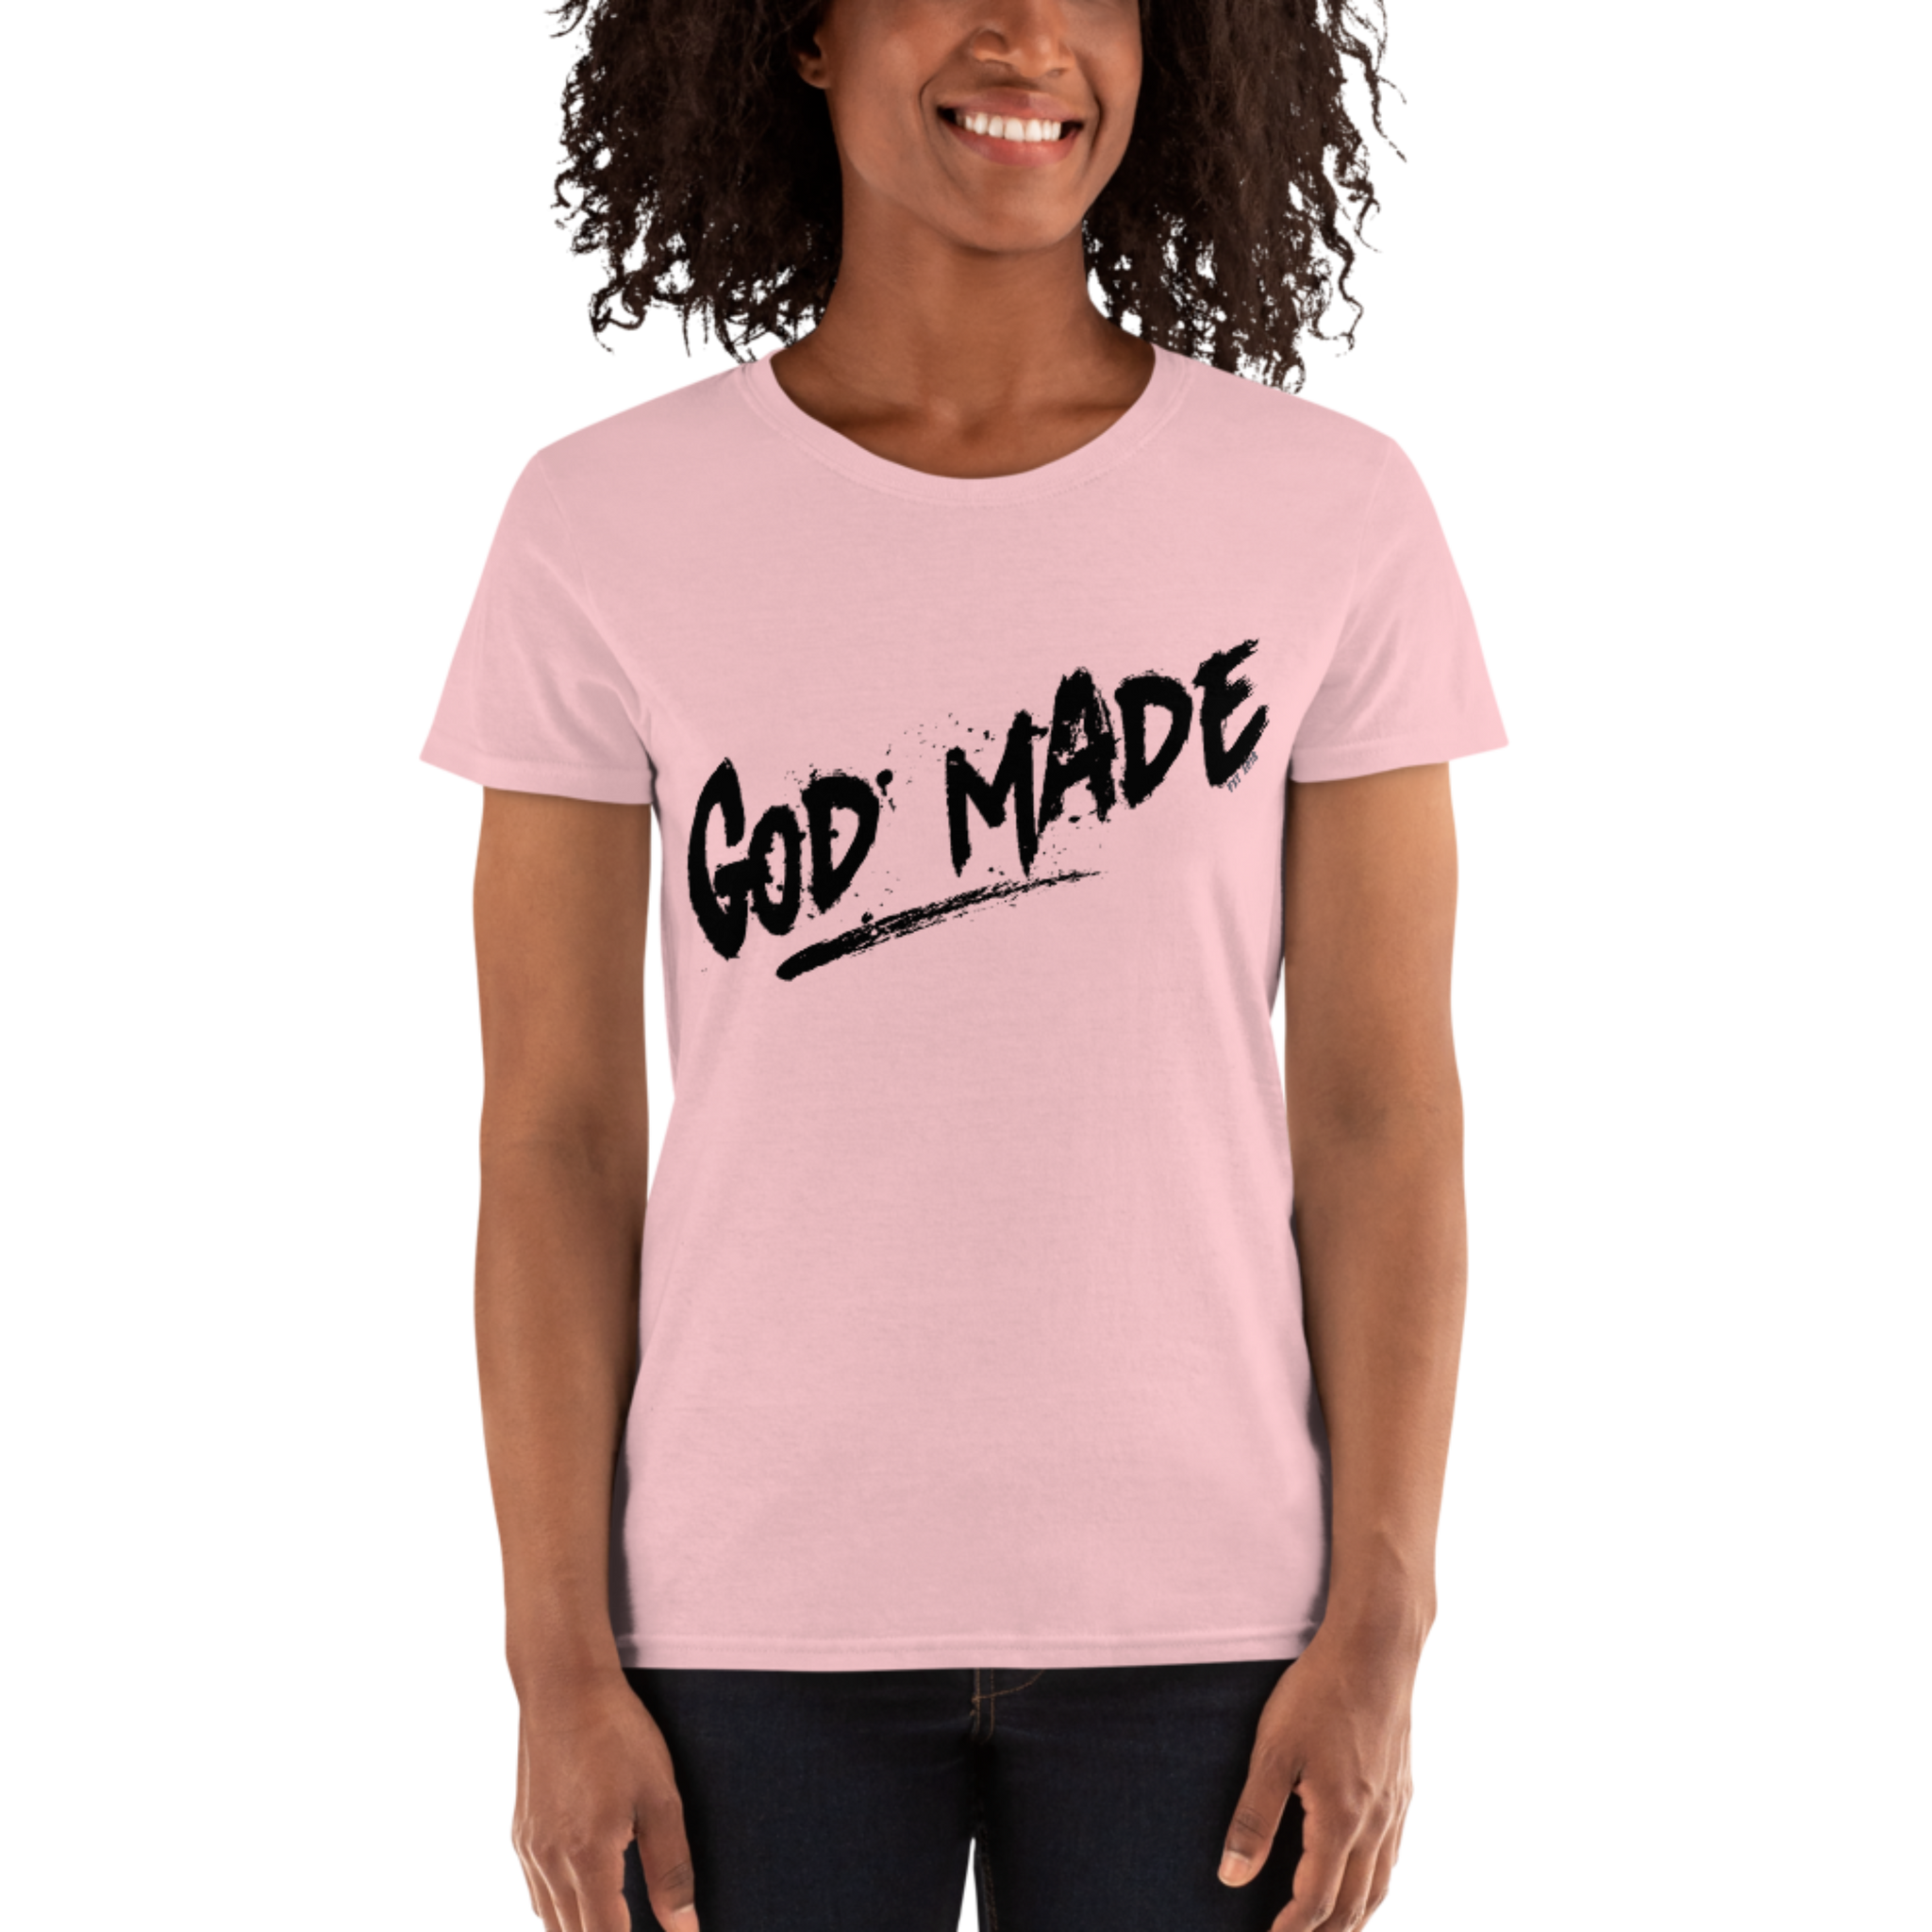 Women's God Made short sleeve t-shirt